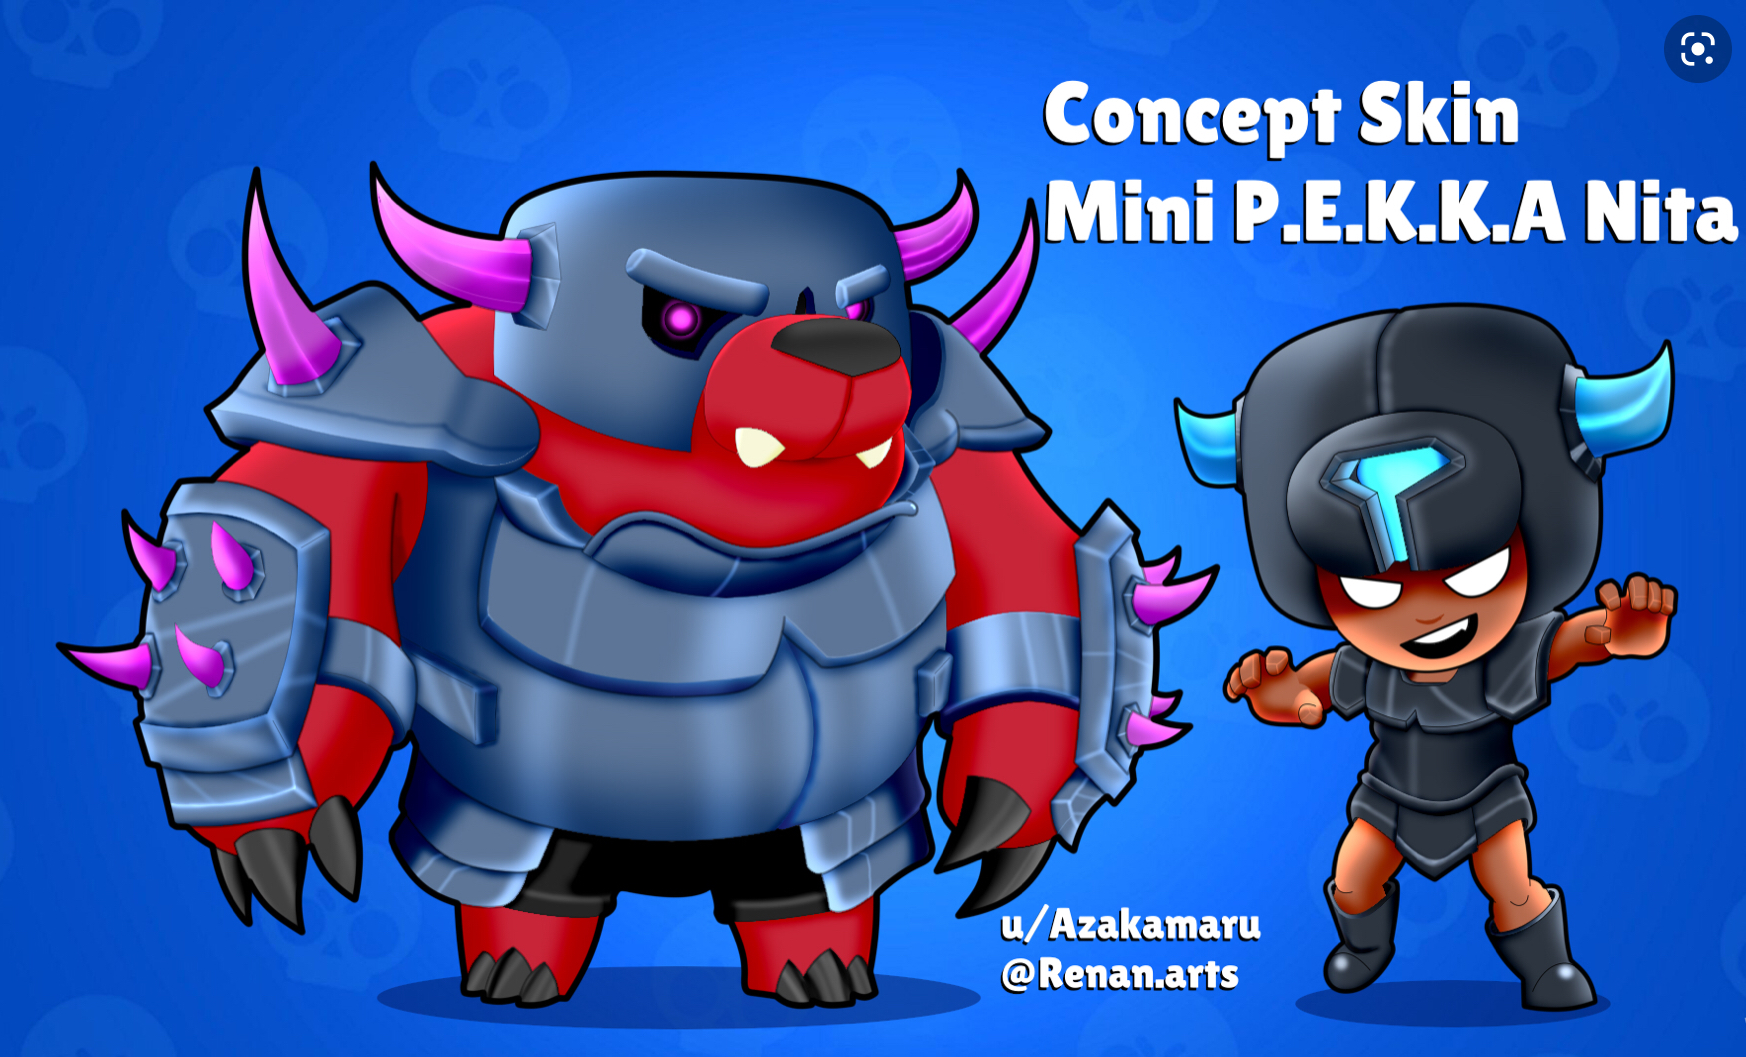 Clash Of Clans X Brawl Stars X Clash Royale Skins I Want In The Game Fandom